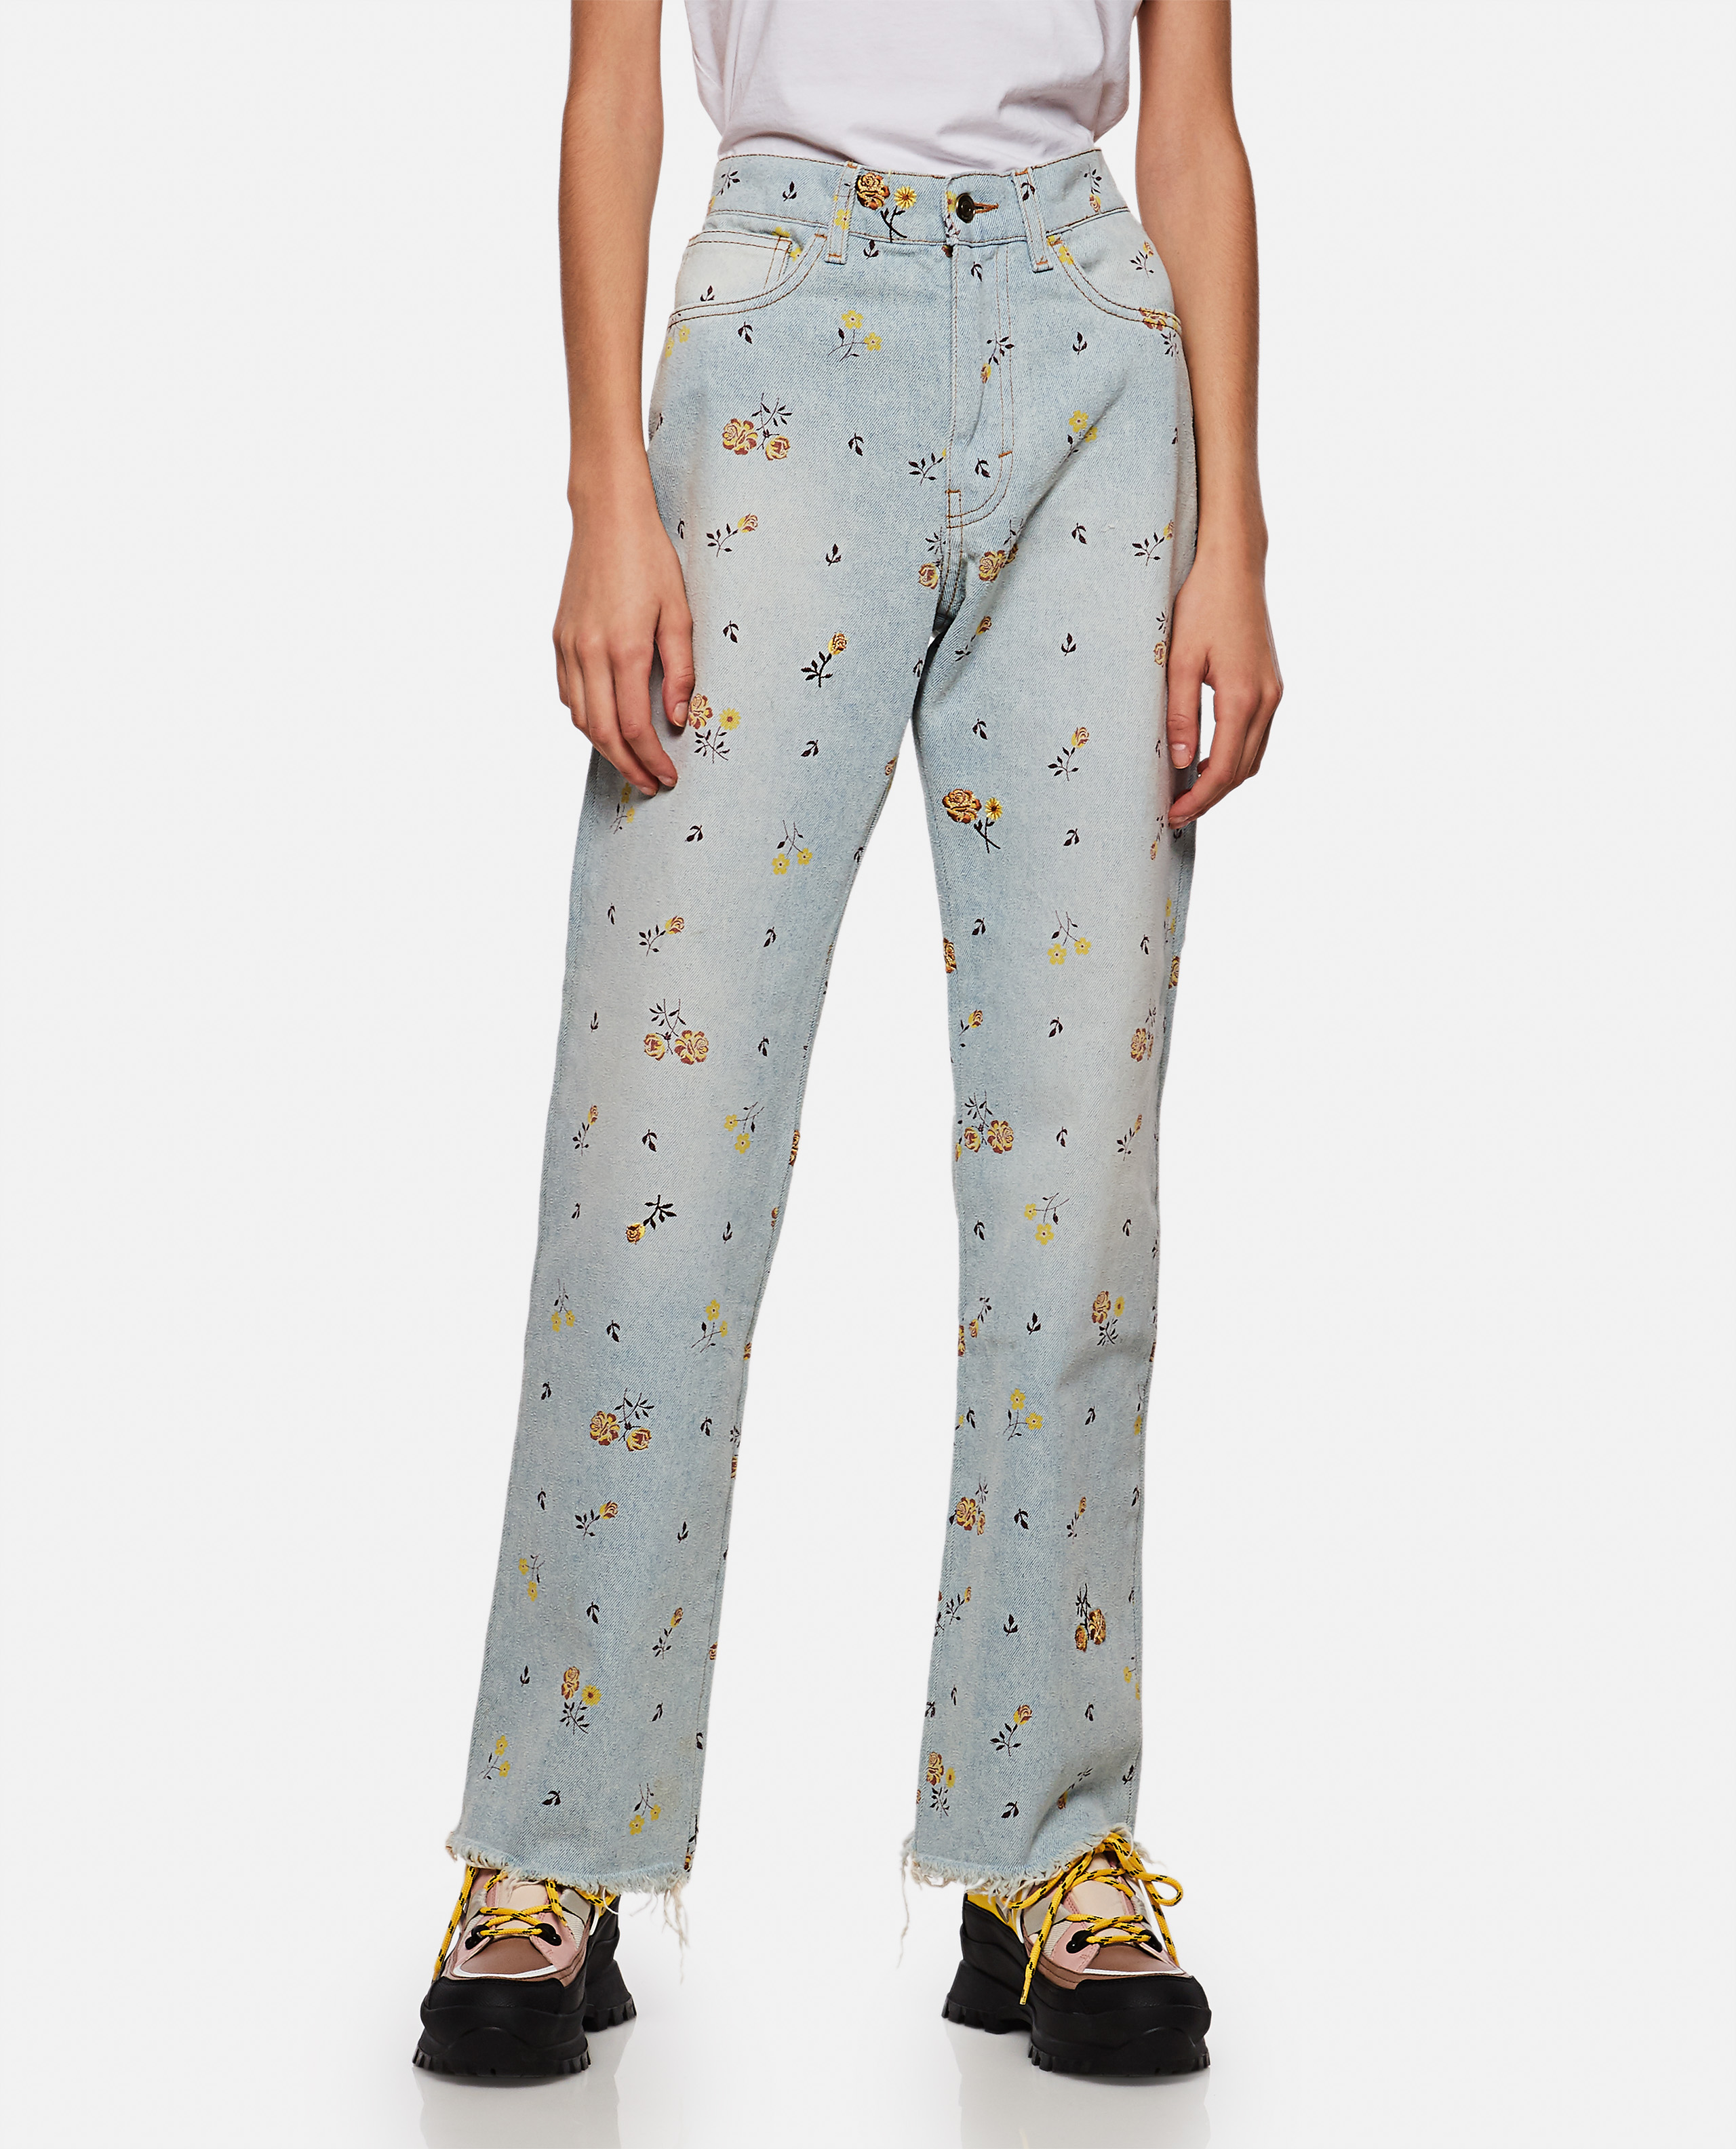 High-waisted floral jeans